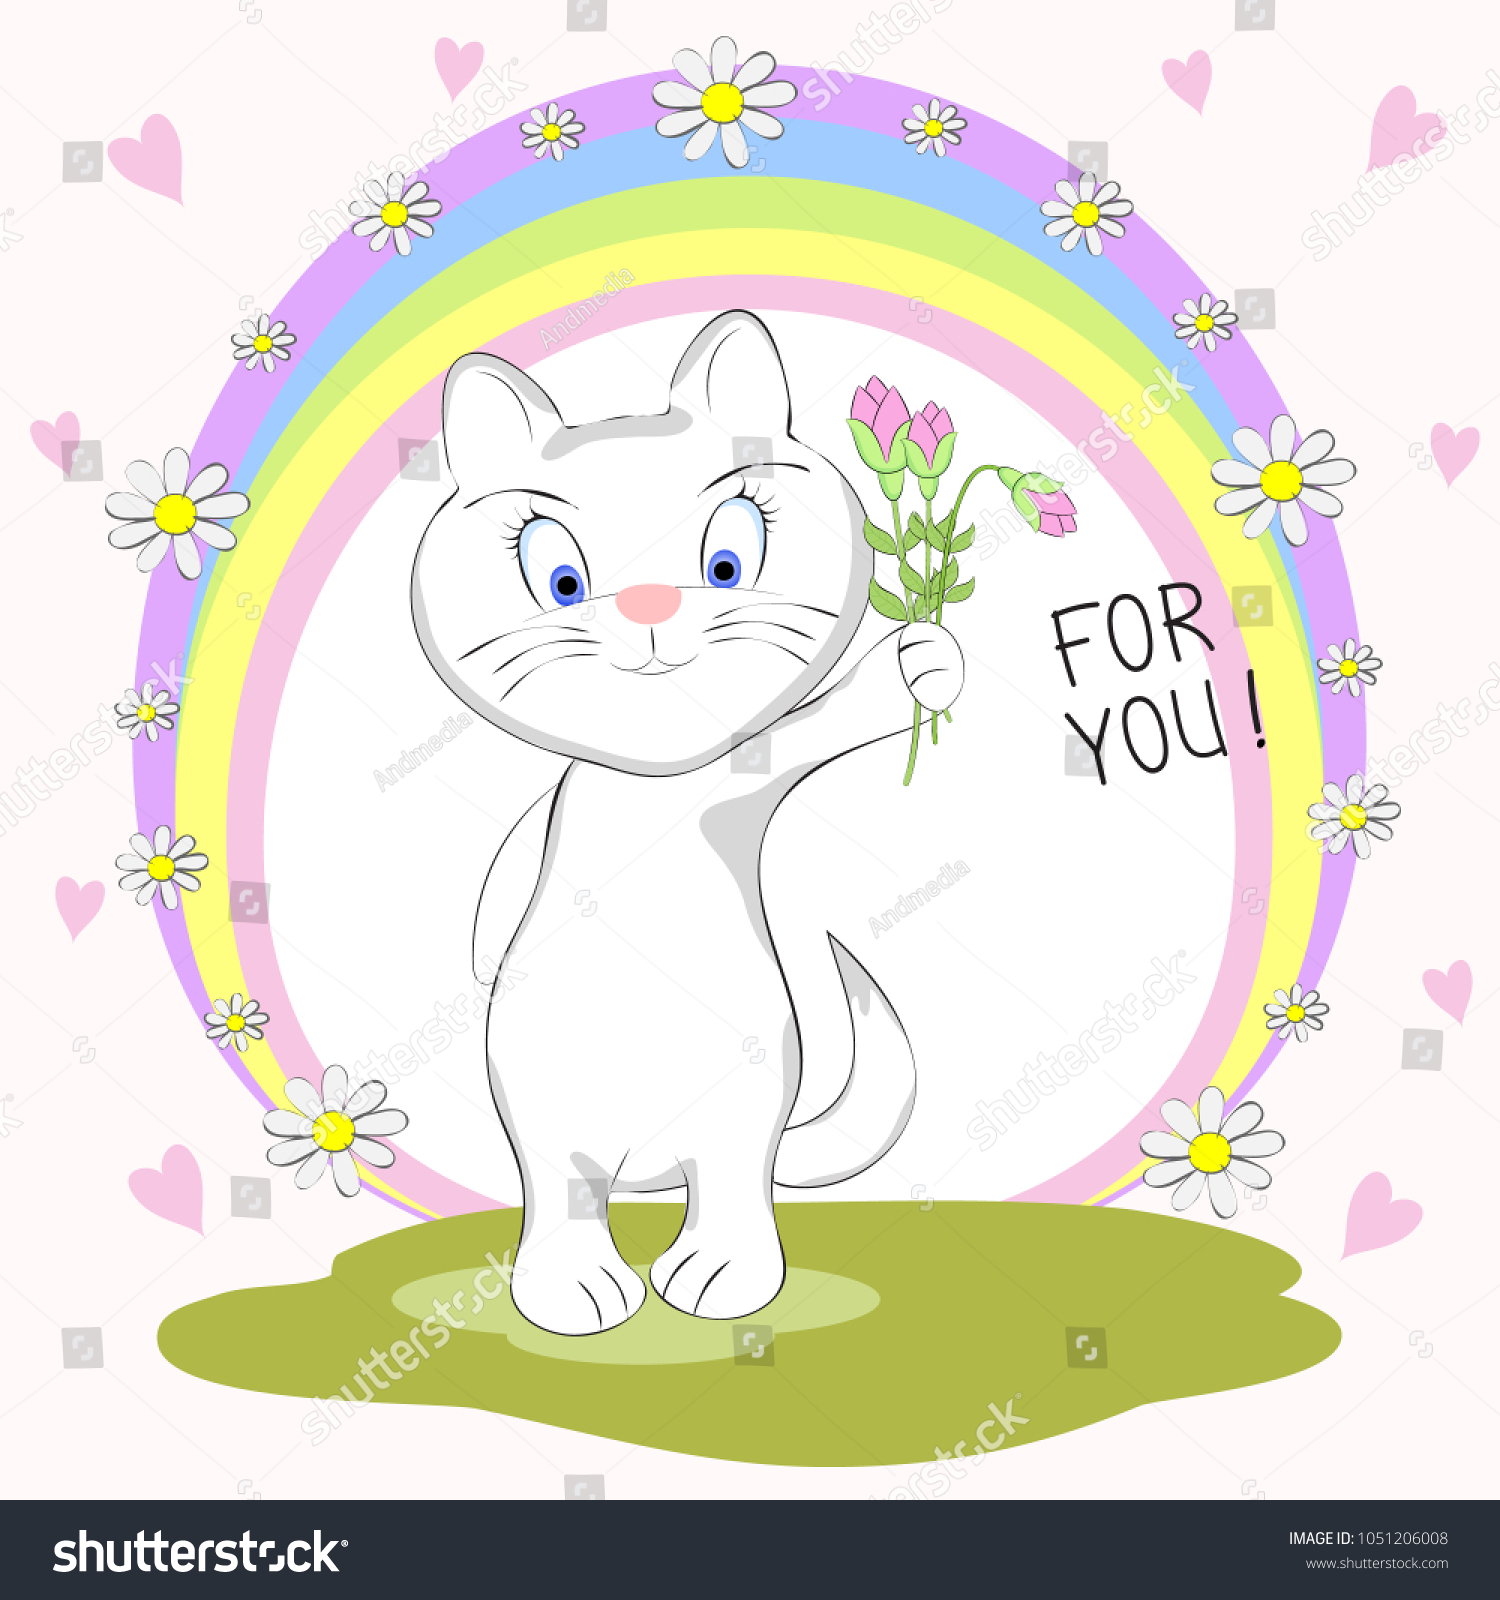 Cute Cat Bouquet Flowers Inscription You Stock Vector 1051206008 ...